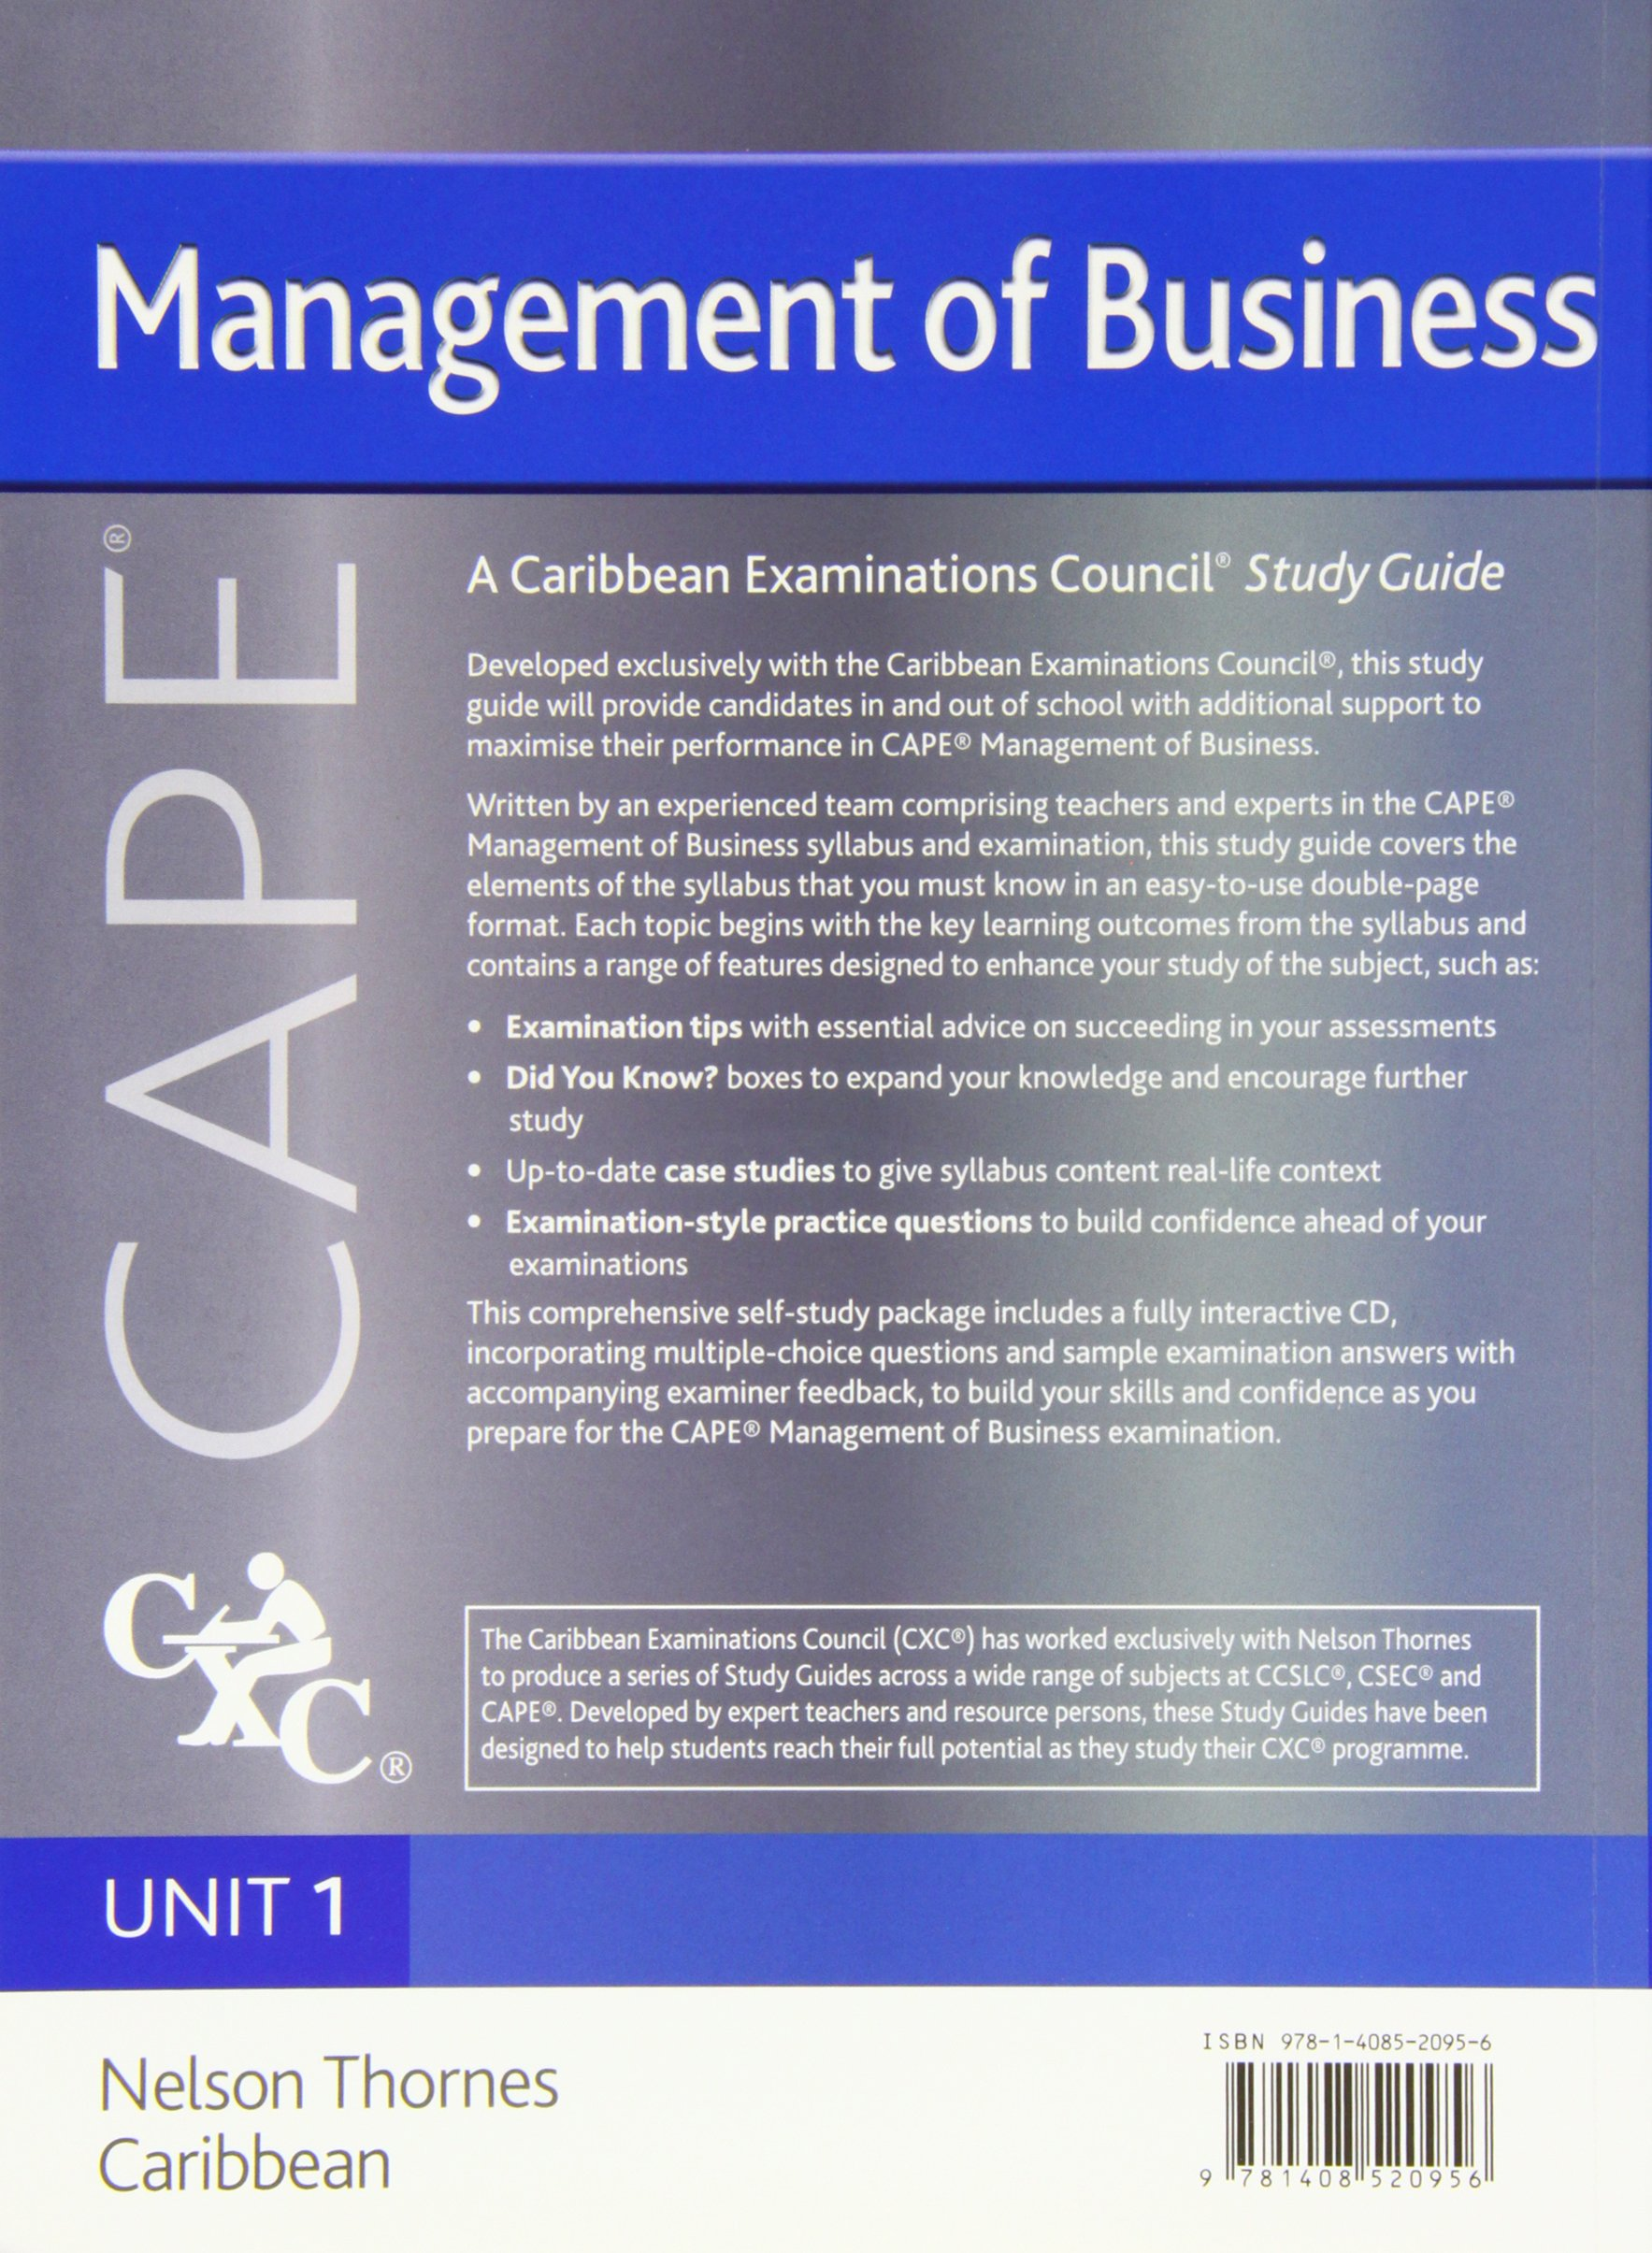 Management of Business CAPE Unit 1 CXC Study Guide: A Caribbean  Examinations Council: Robert Dransfield, Caribbean Examinations Council,  Margaret Scott ...